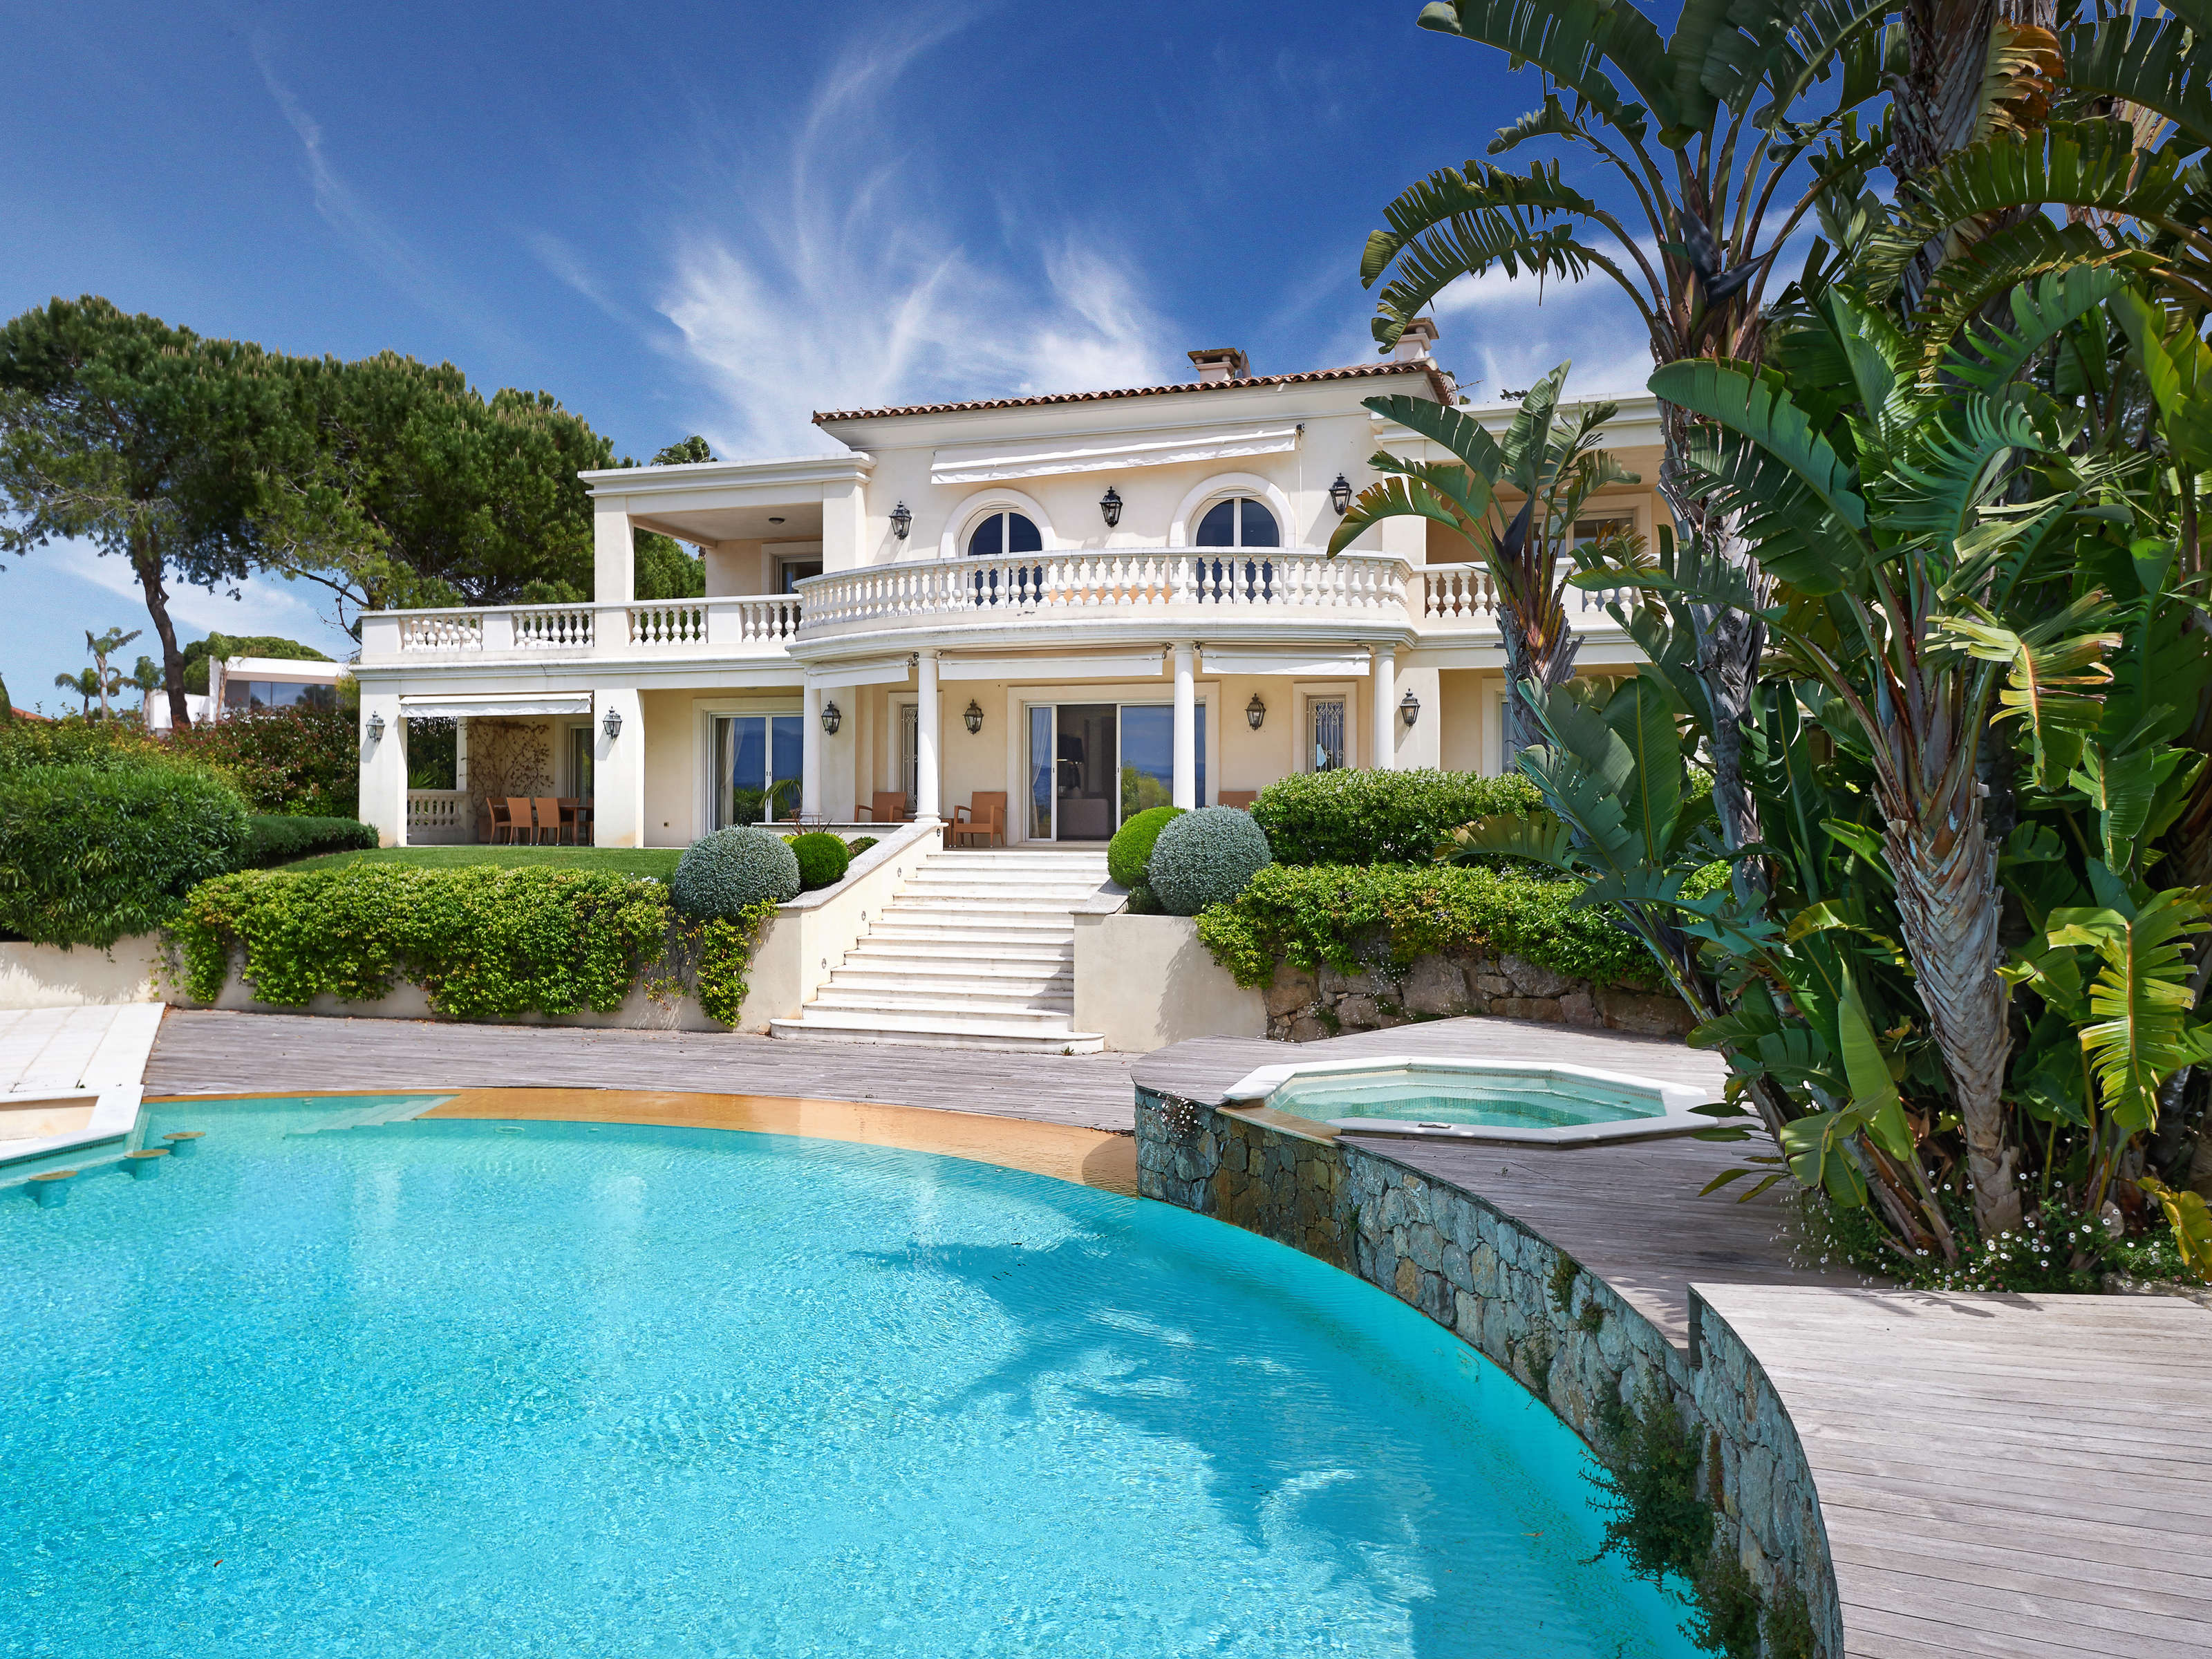 Other Residential for Sale at Luxury property in private domain with panoamic sea view Cap D'Antibes, Provence-Alpes-Cote D'Azur 06160 France